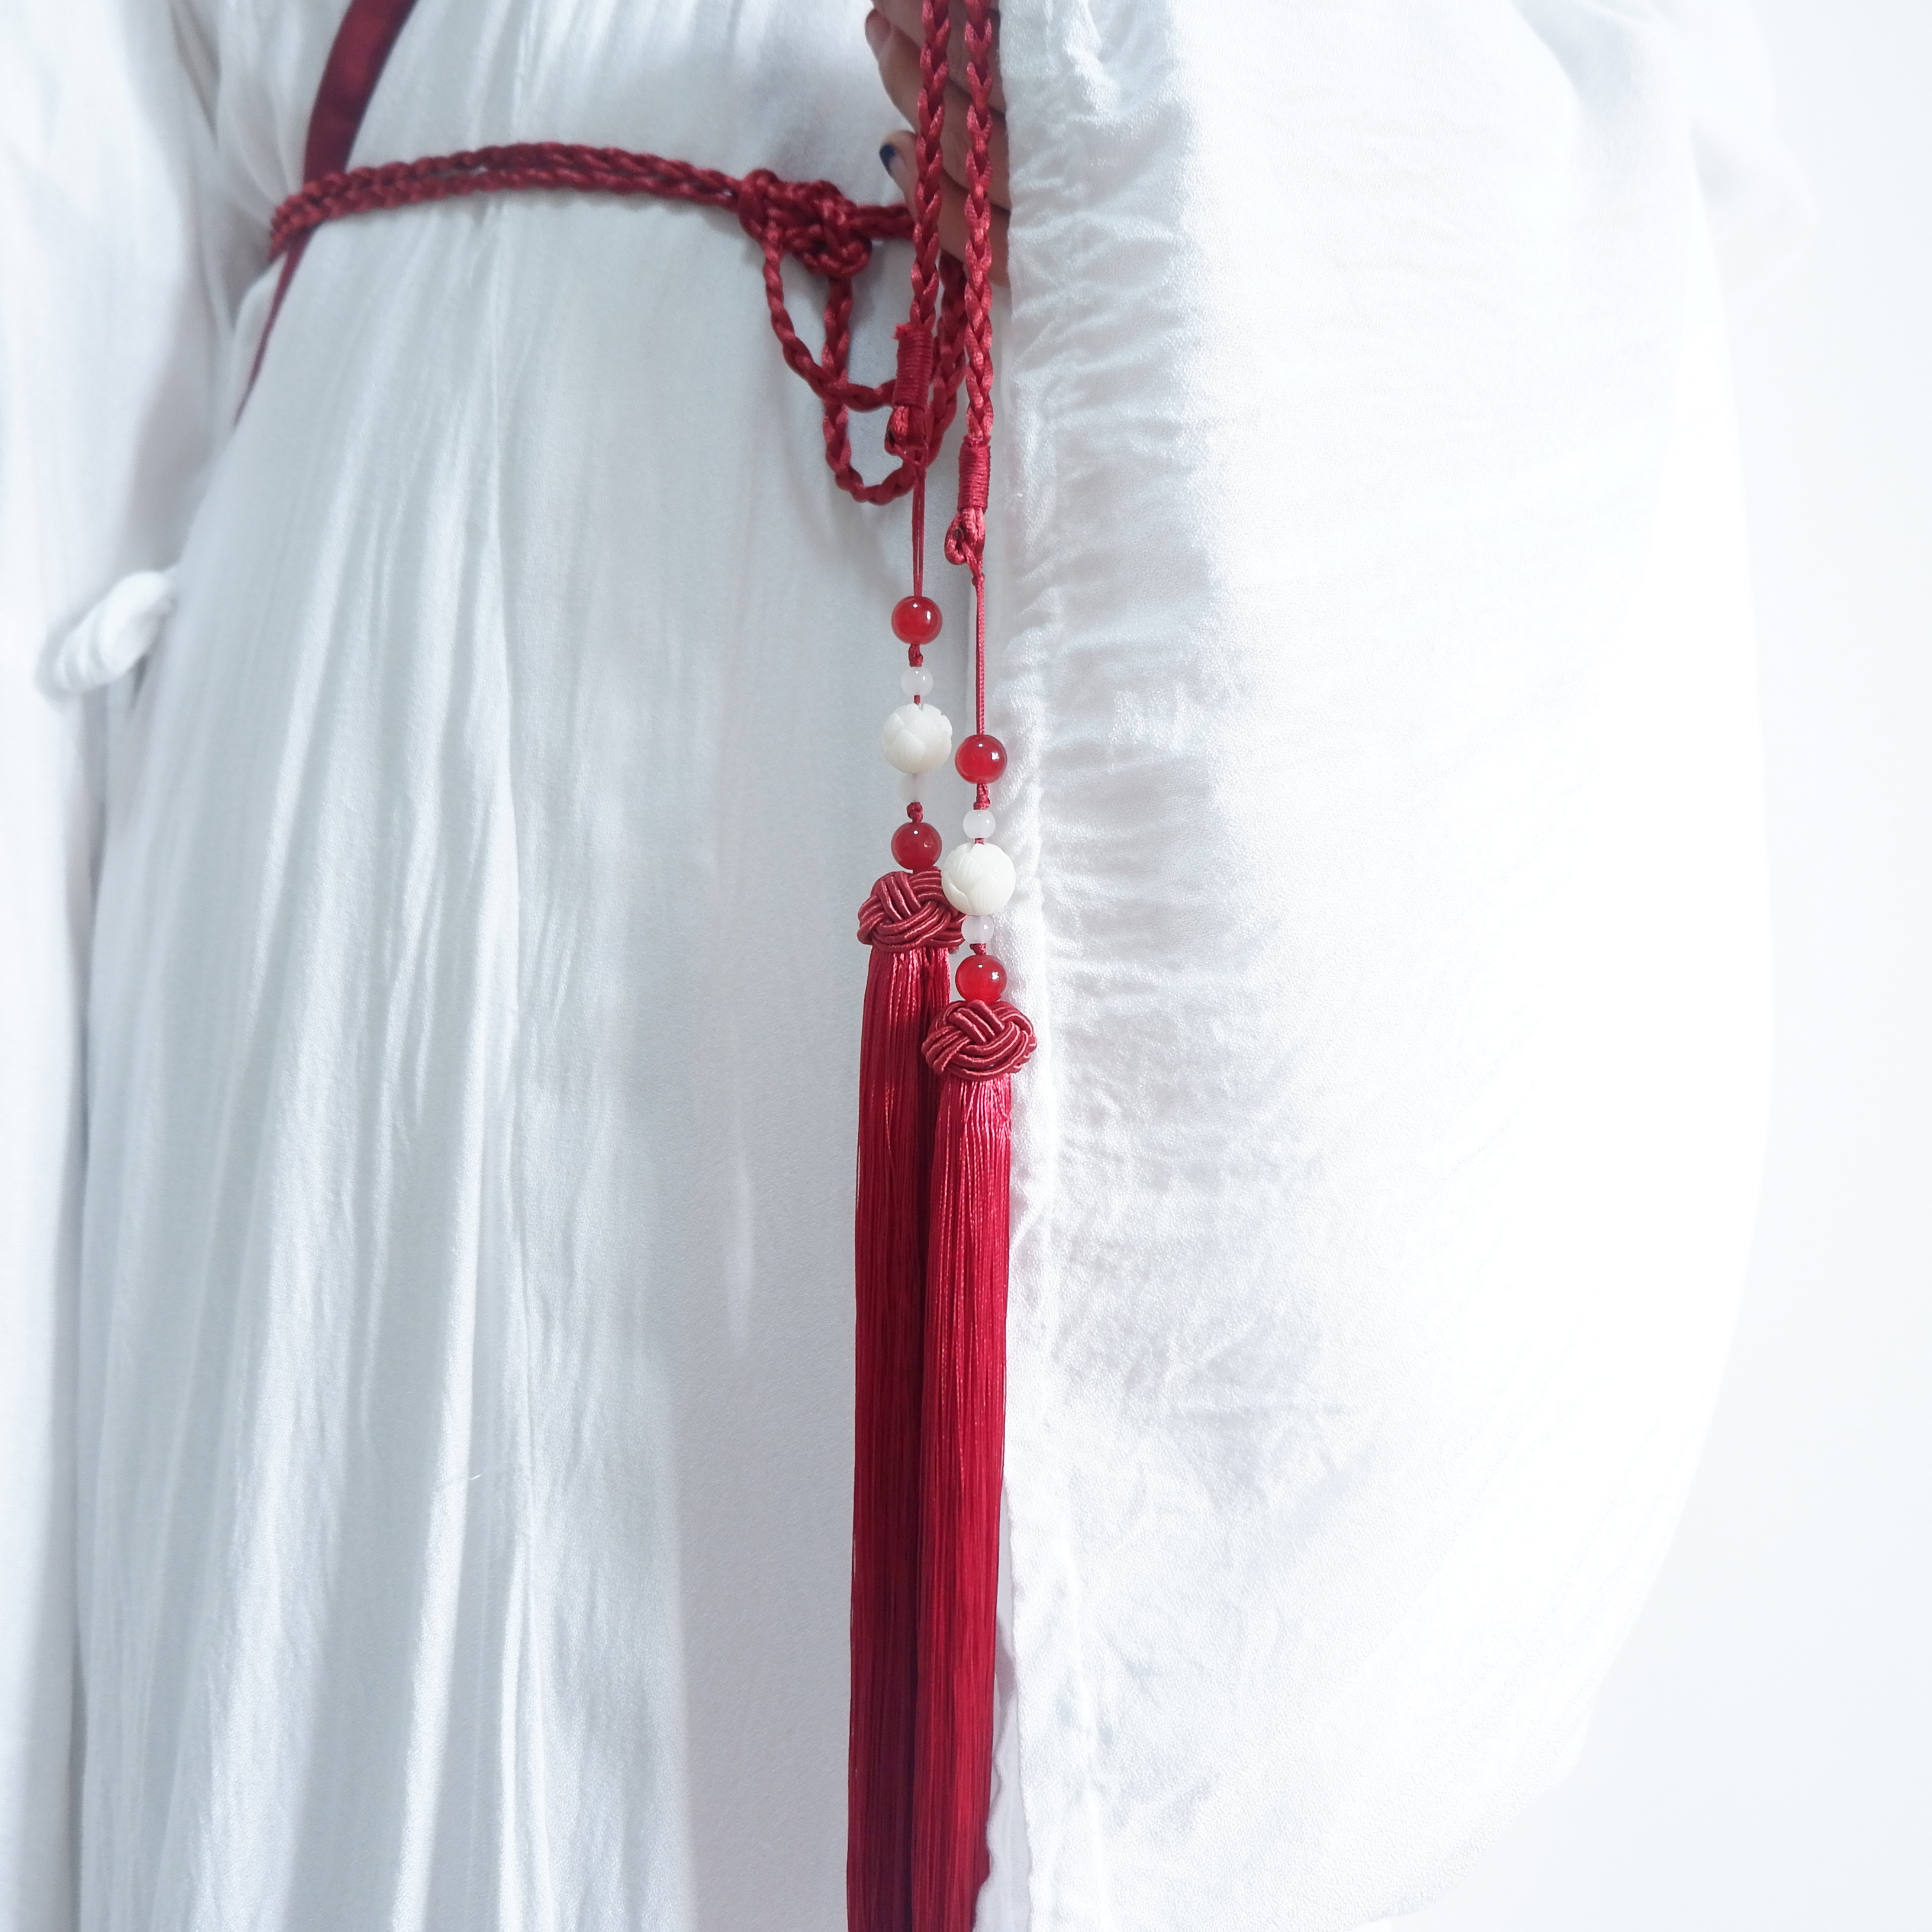 Luofei Youge original palace tapestry ancient style white Bodhi lotus round neck Hanfu belt lengthened tassel Daopao accessories